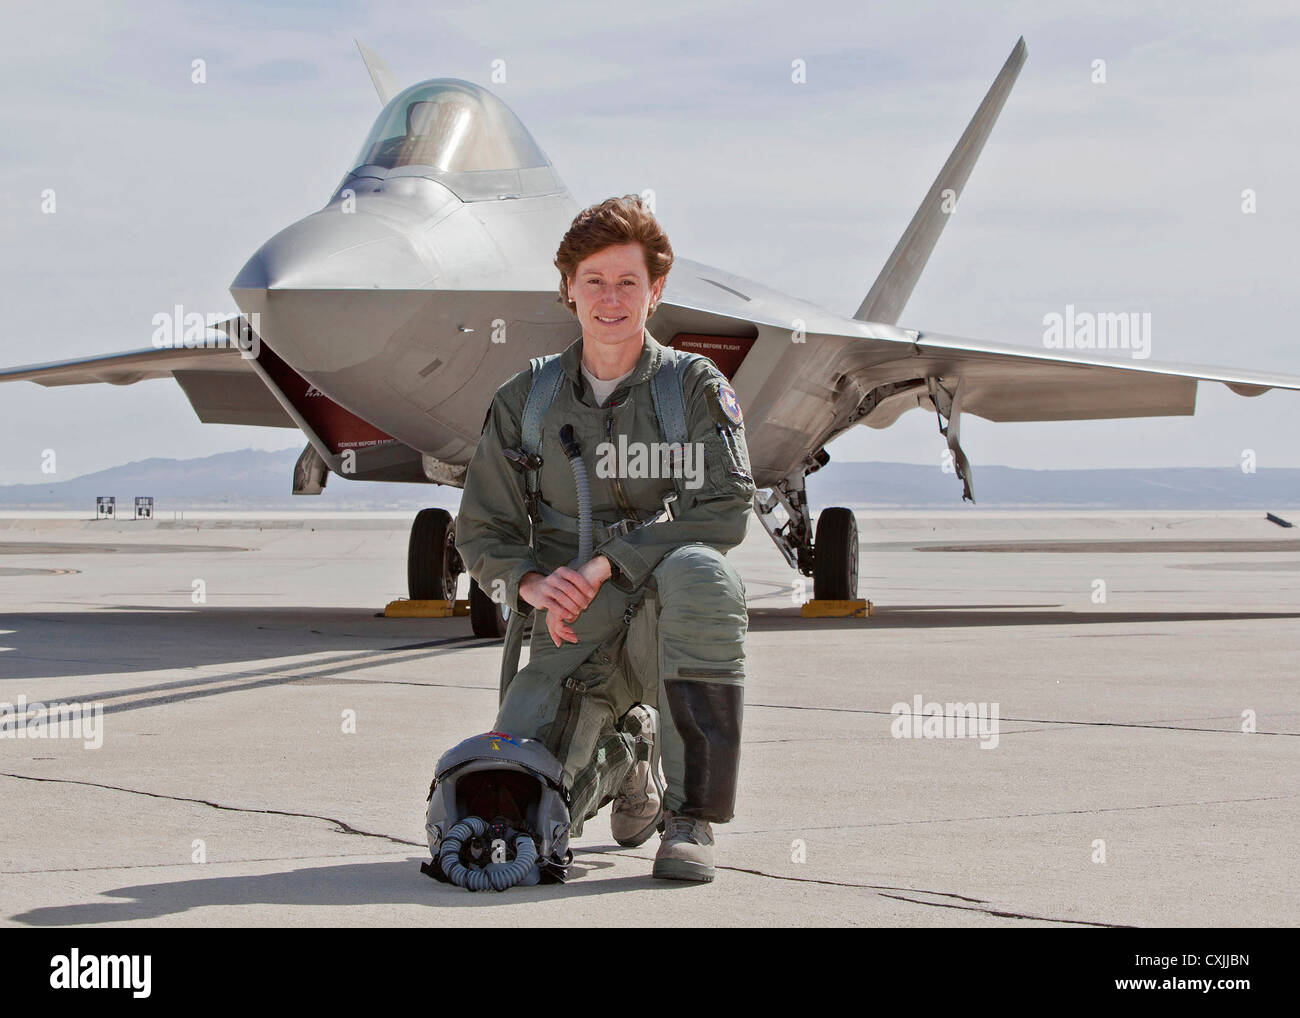 us air force pilot col dawn dunlop poses in front of her f 22 raptor stock photo 50811369 alamy. Black Bedroom Furniture Sets. Home Design Ideas